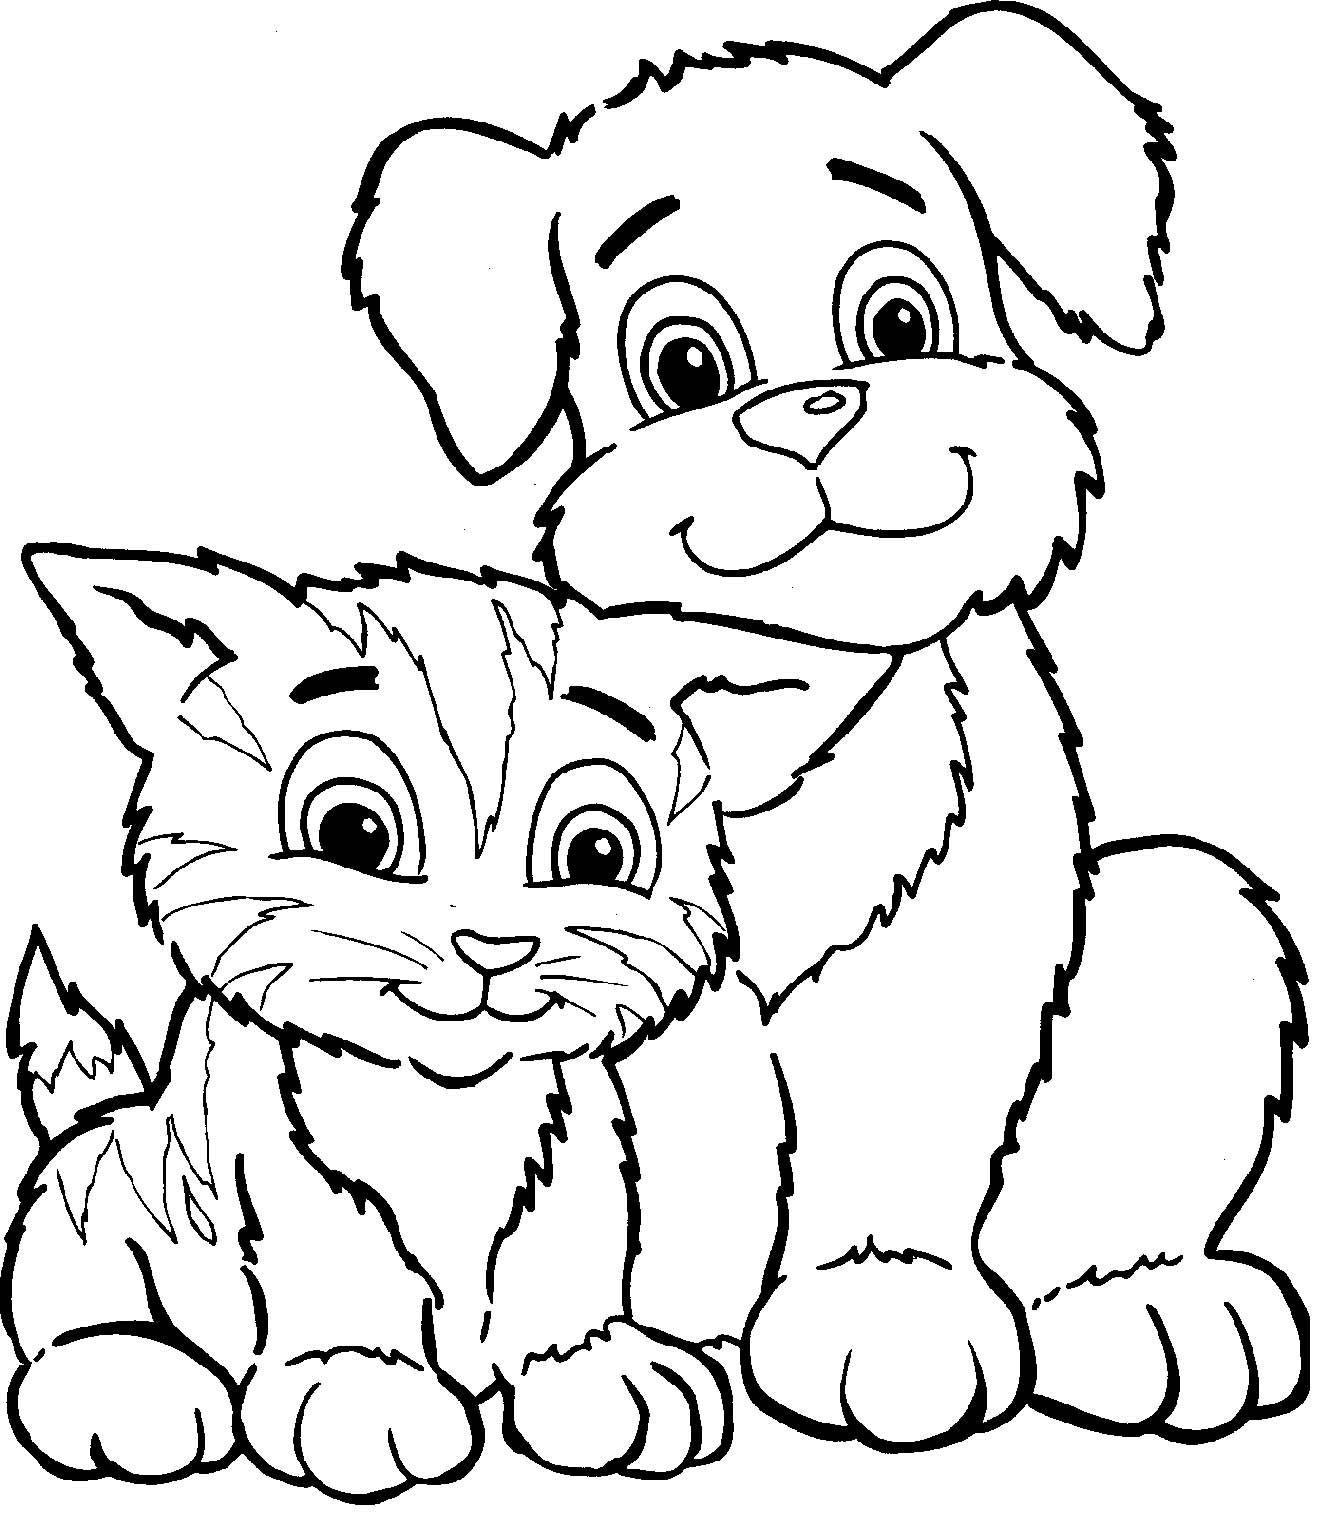 Cat And Dog Cute Coloring Page | Coloring Pages | Pinterest